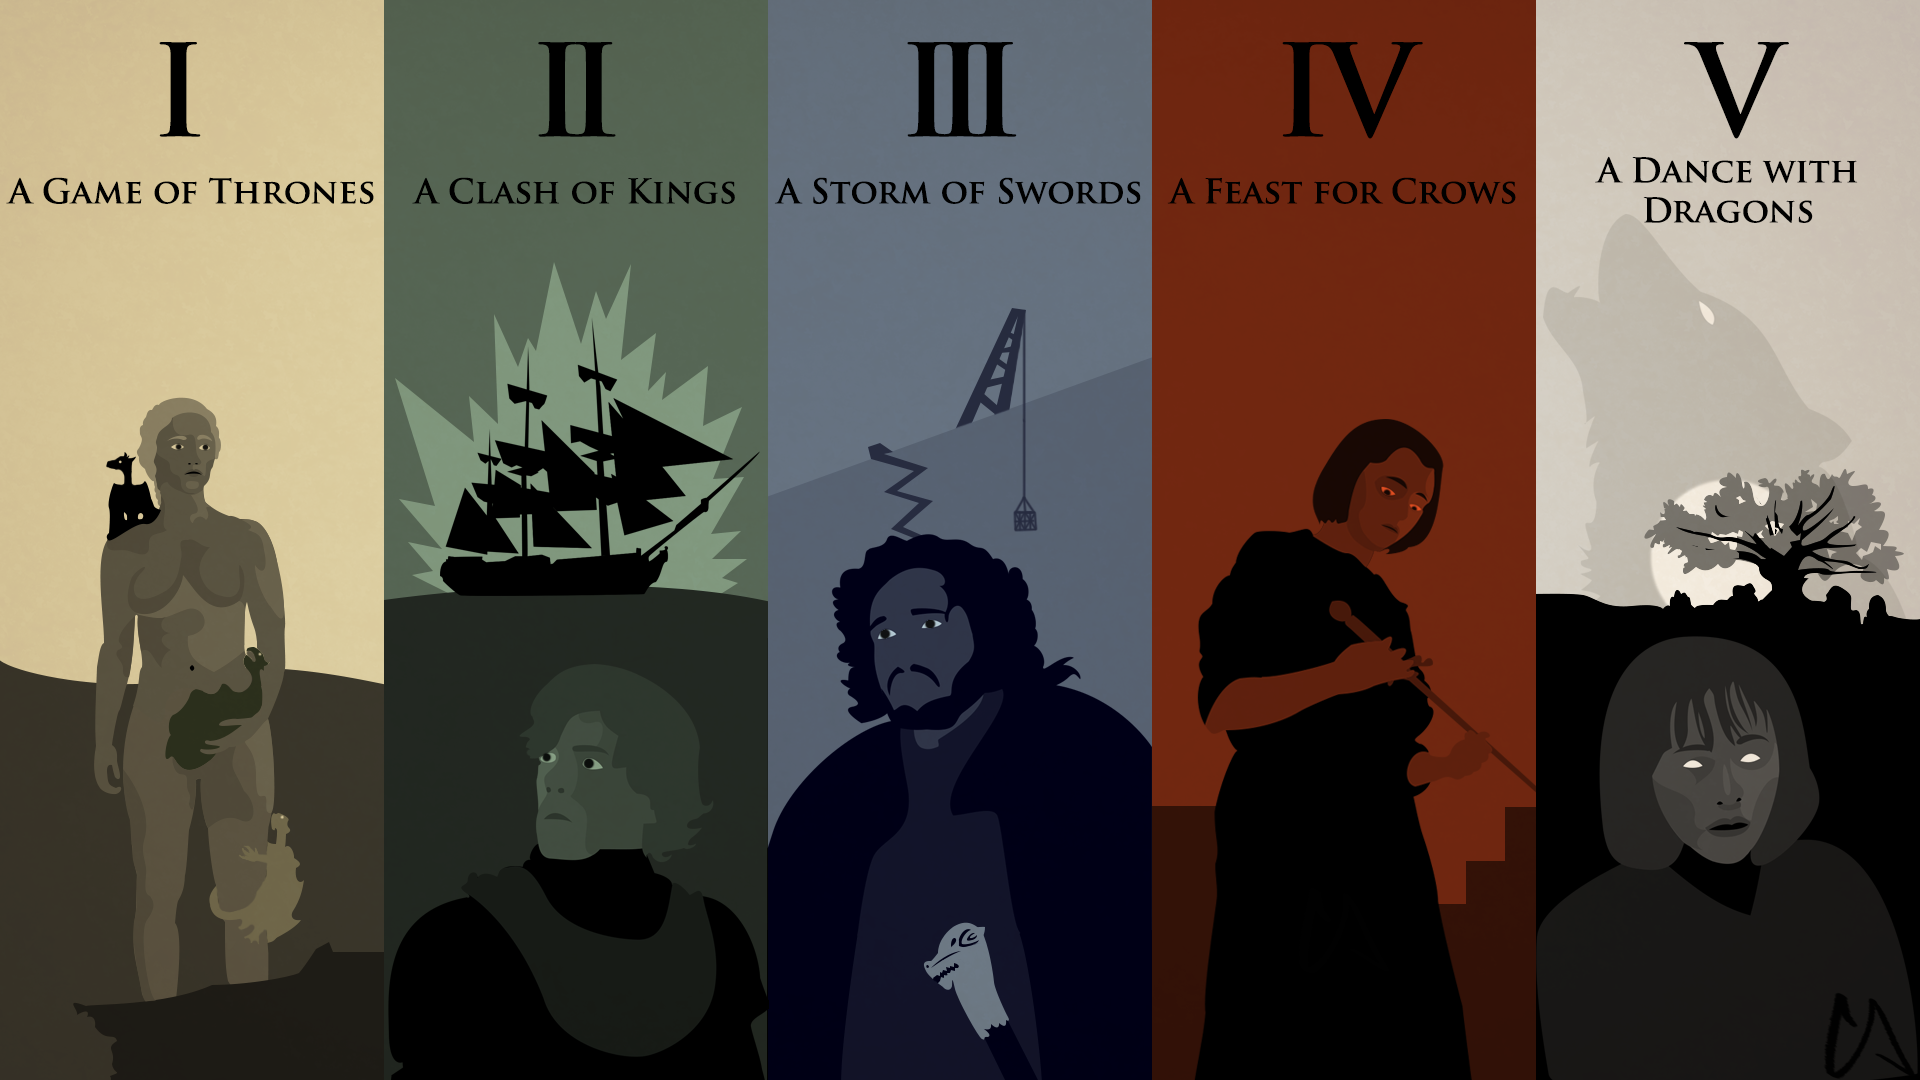 A Song of Ice and Fire Wallpaper by Conkoon 1920x1080